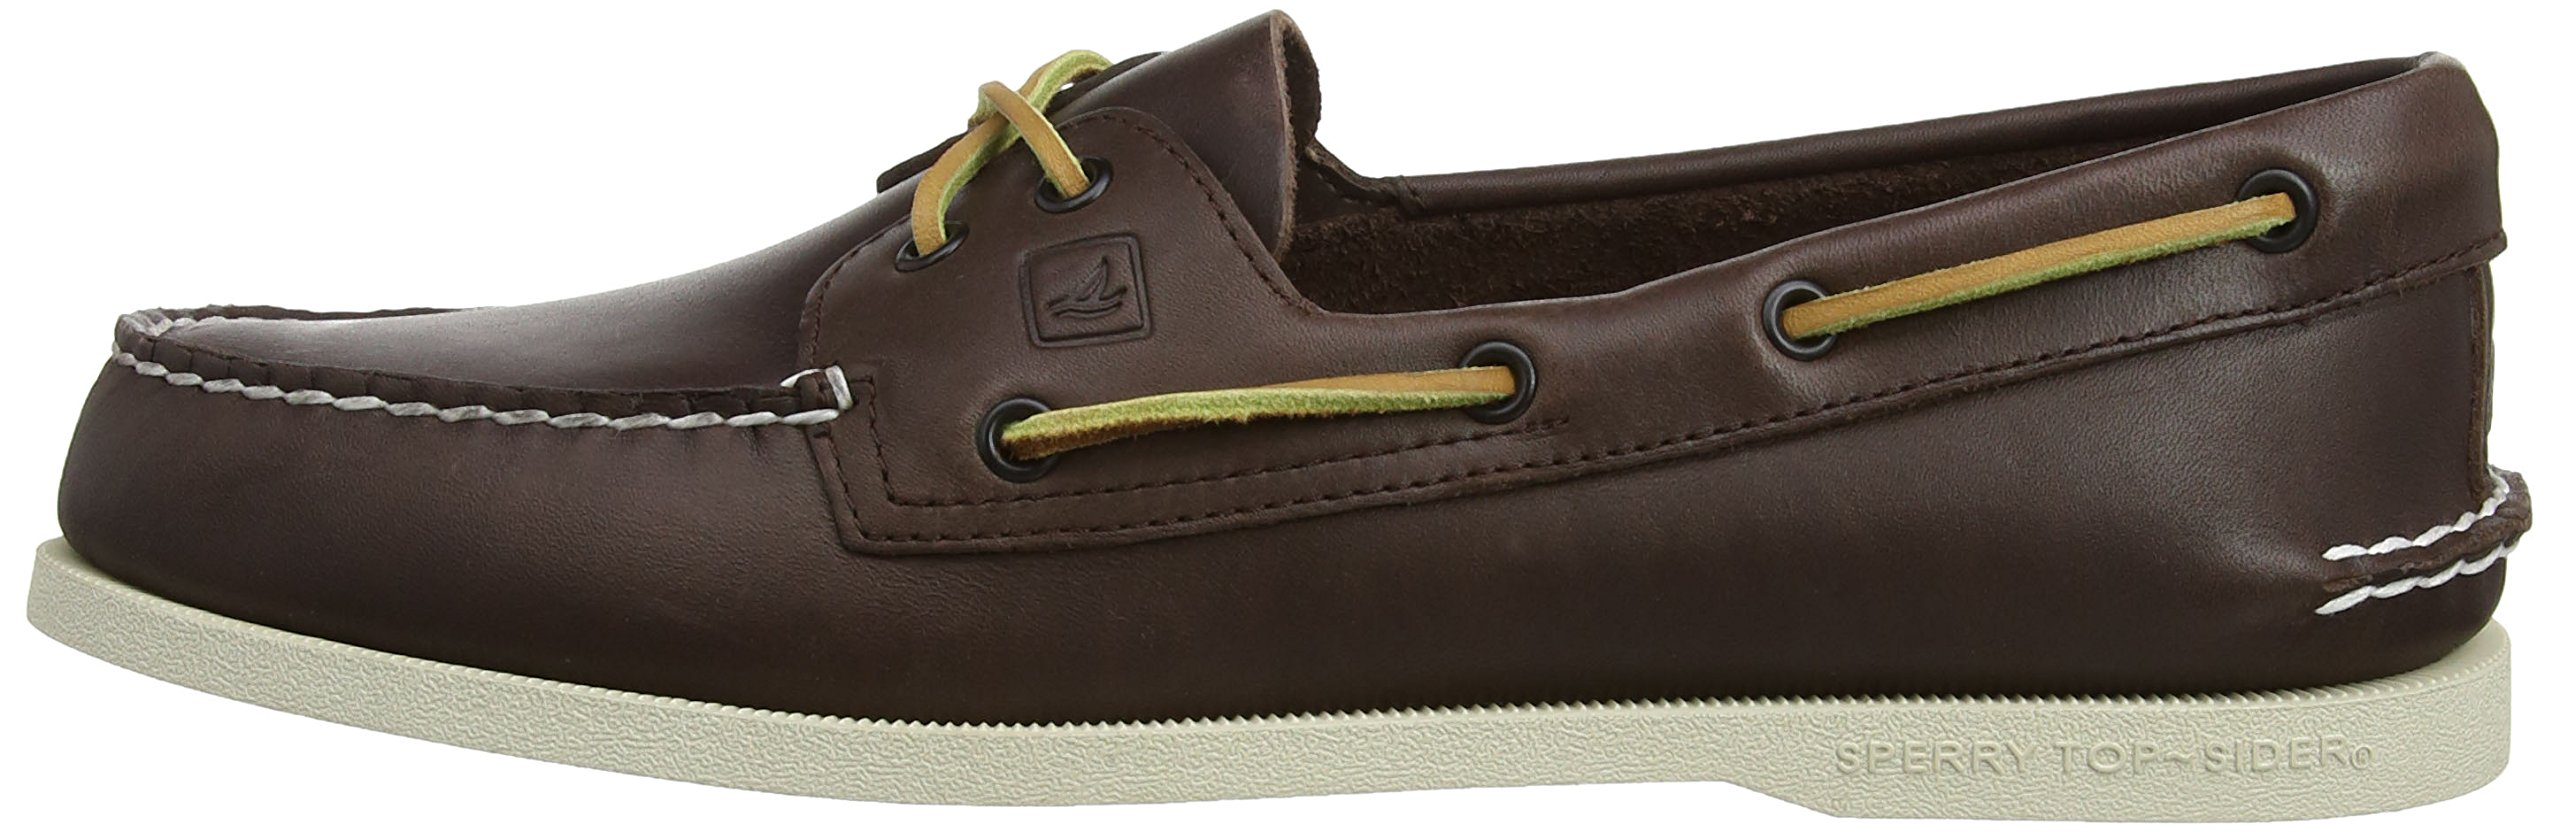 Sperry Men's A/O 2 Eye Boat Shoe,Brown,11.5 M US by SPERRY (Image #5)